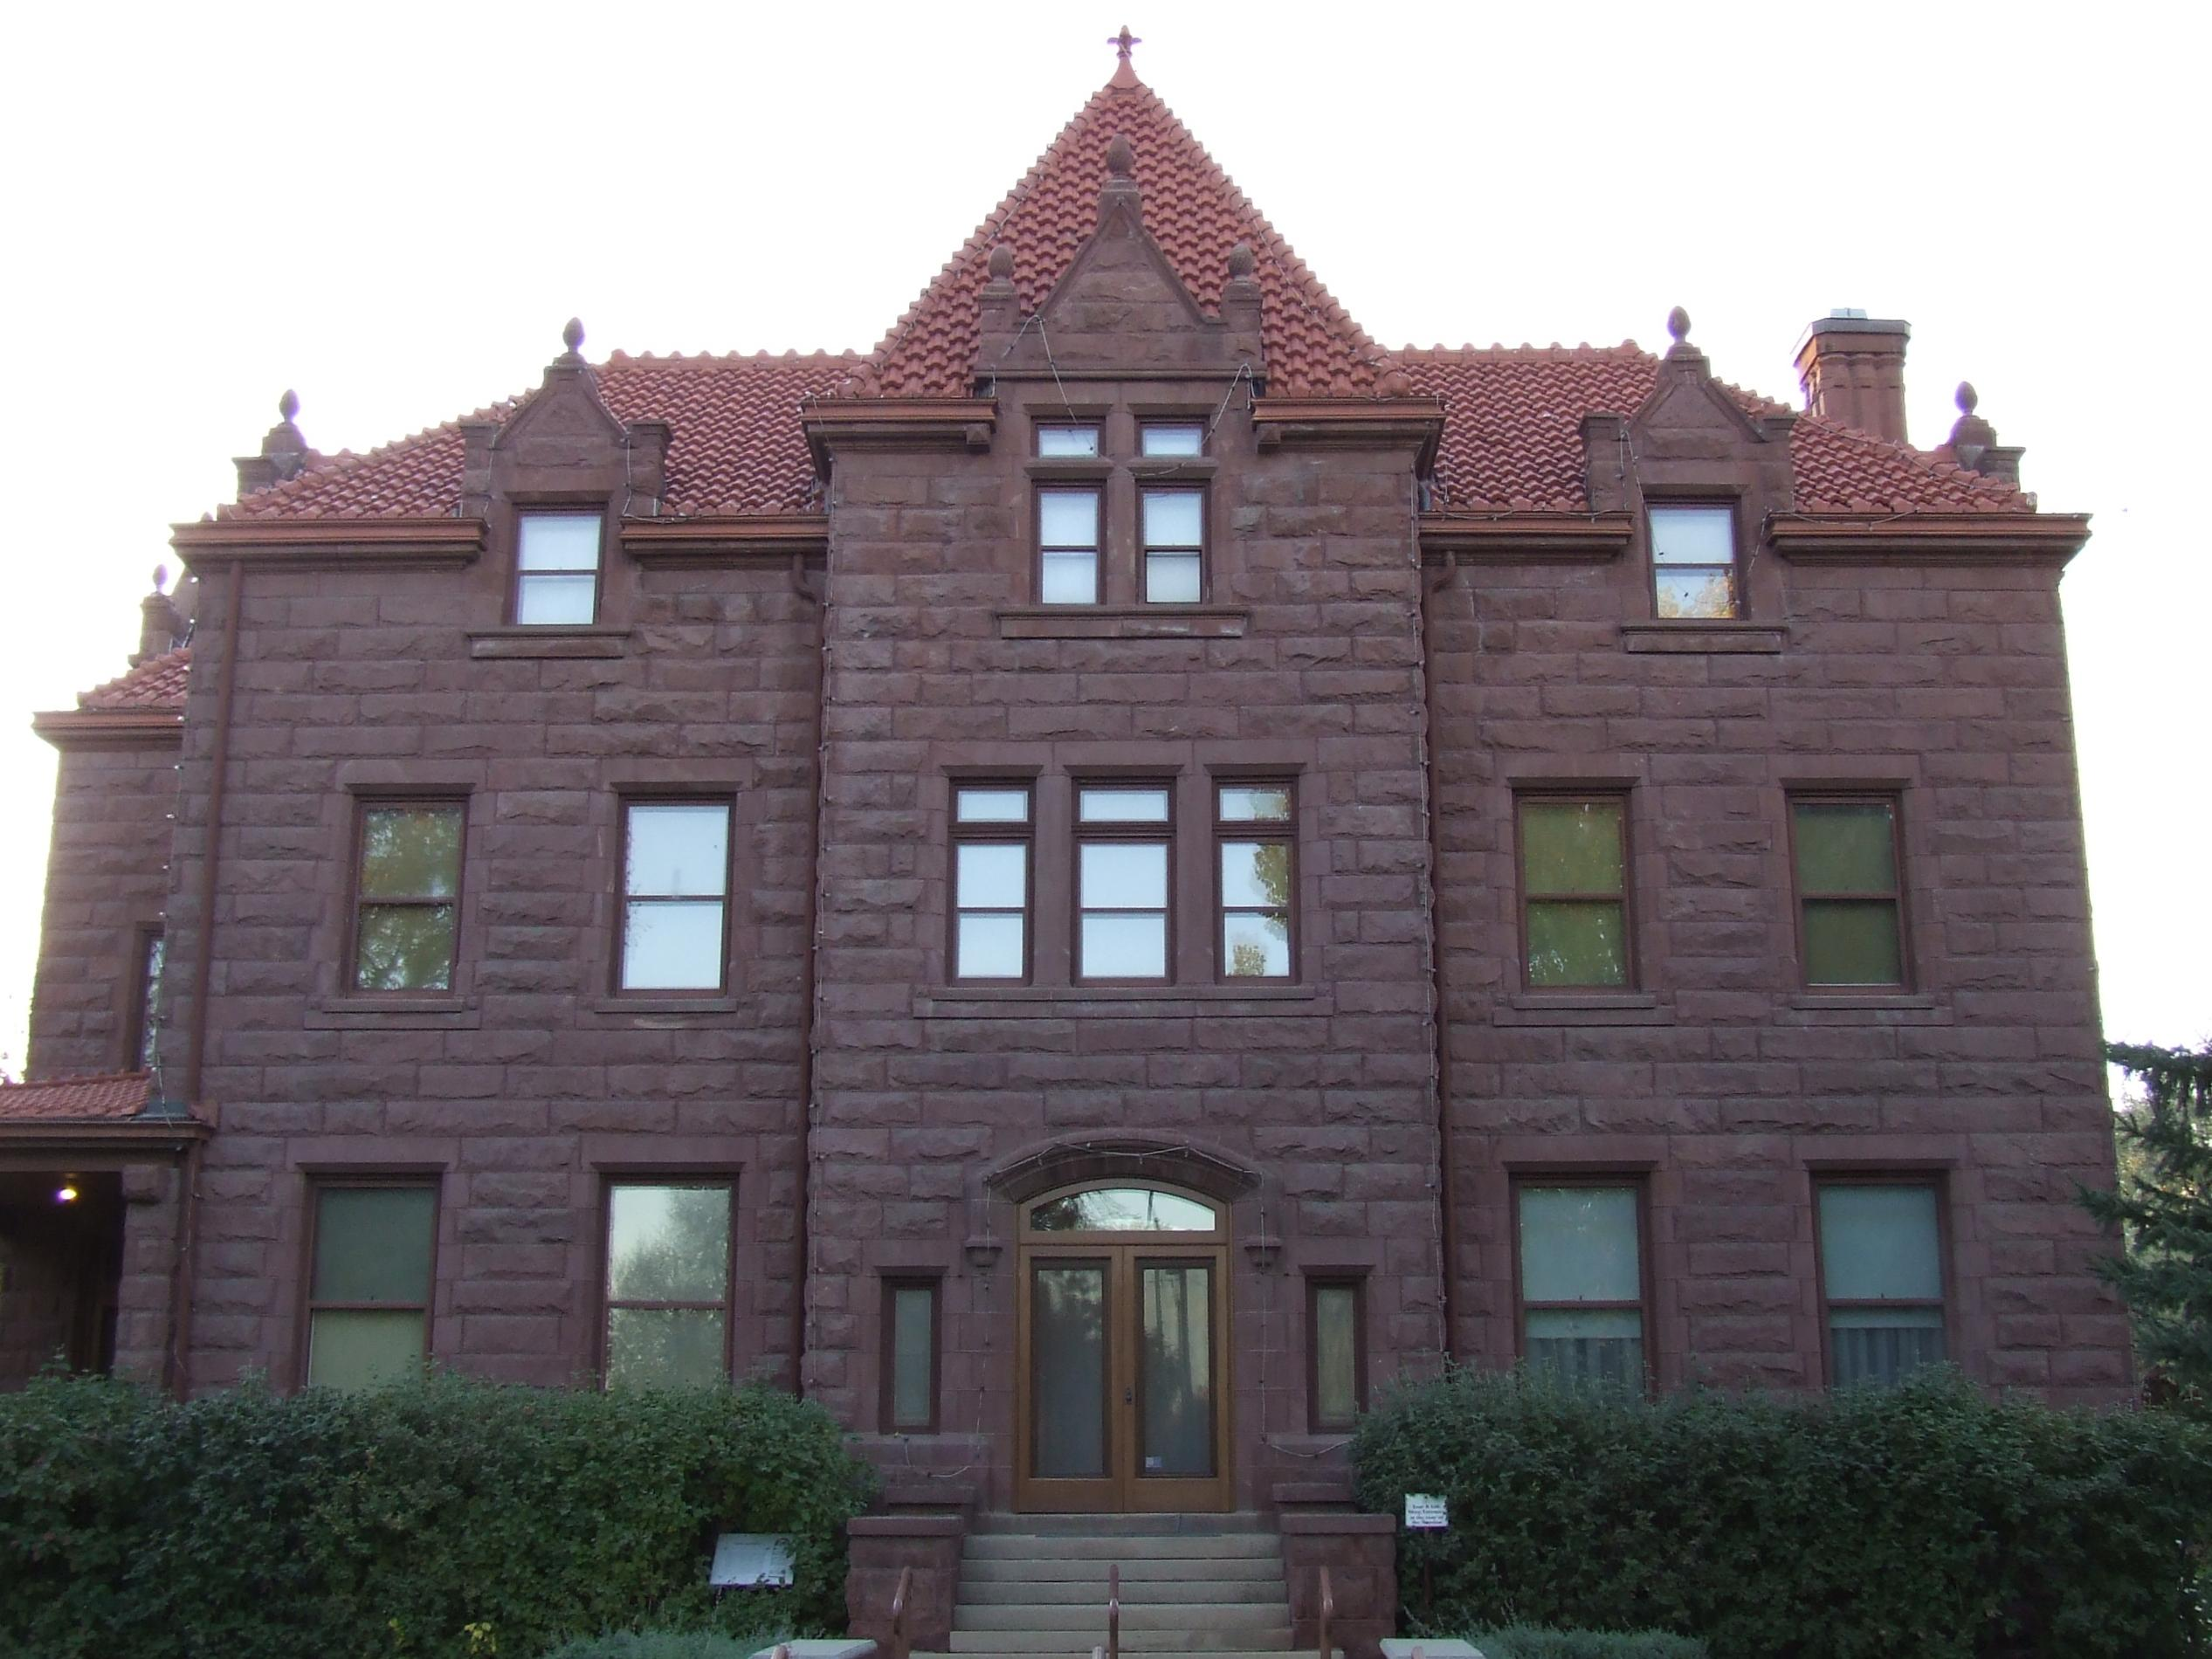 Best Tour Location in Montana-The Moss Mansion